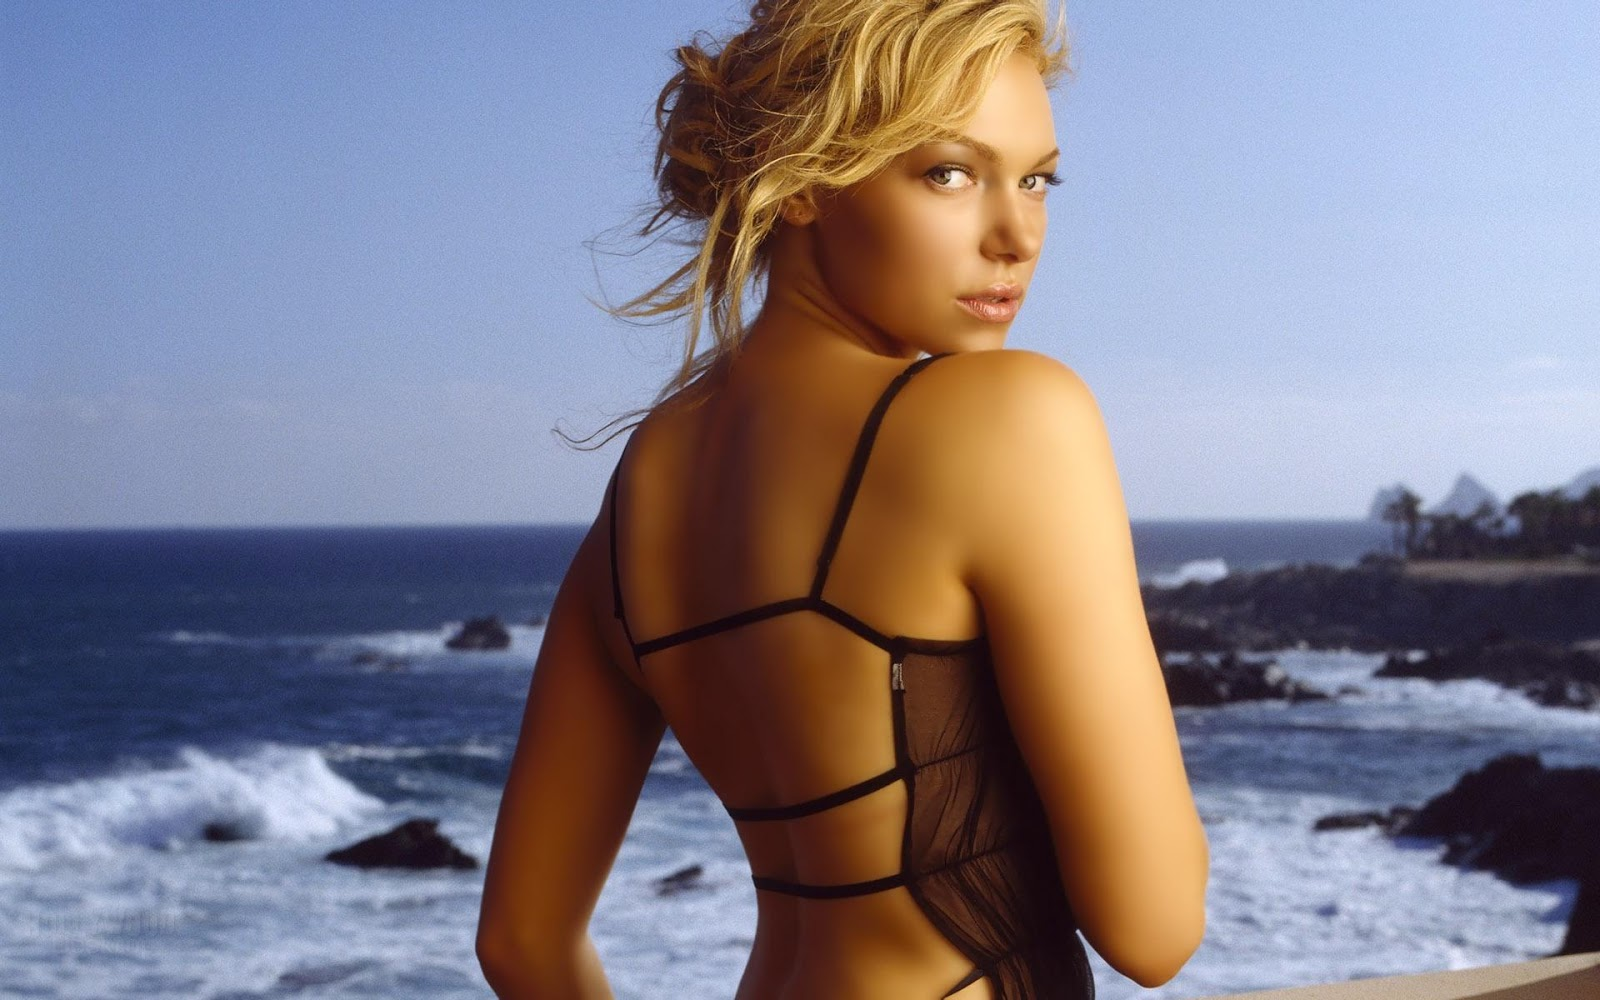 Katherine Heigl HD Wallpapers Free Download